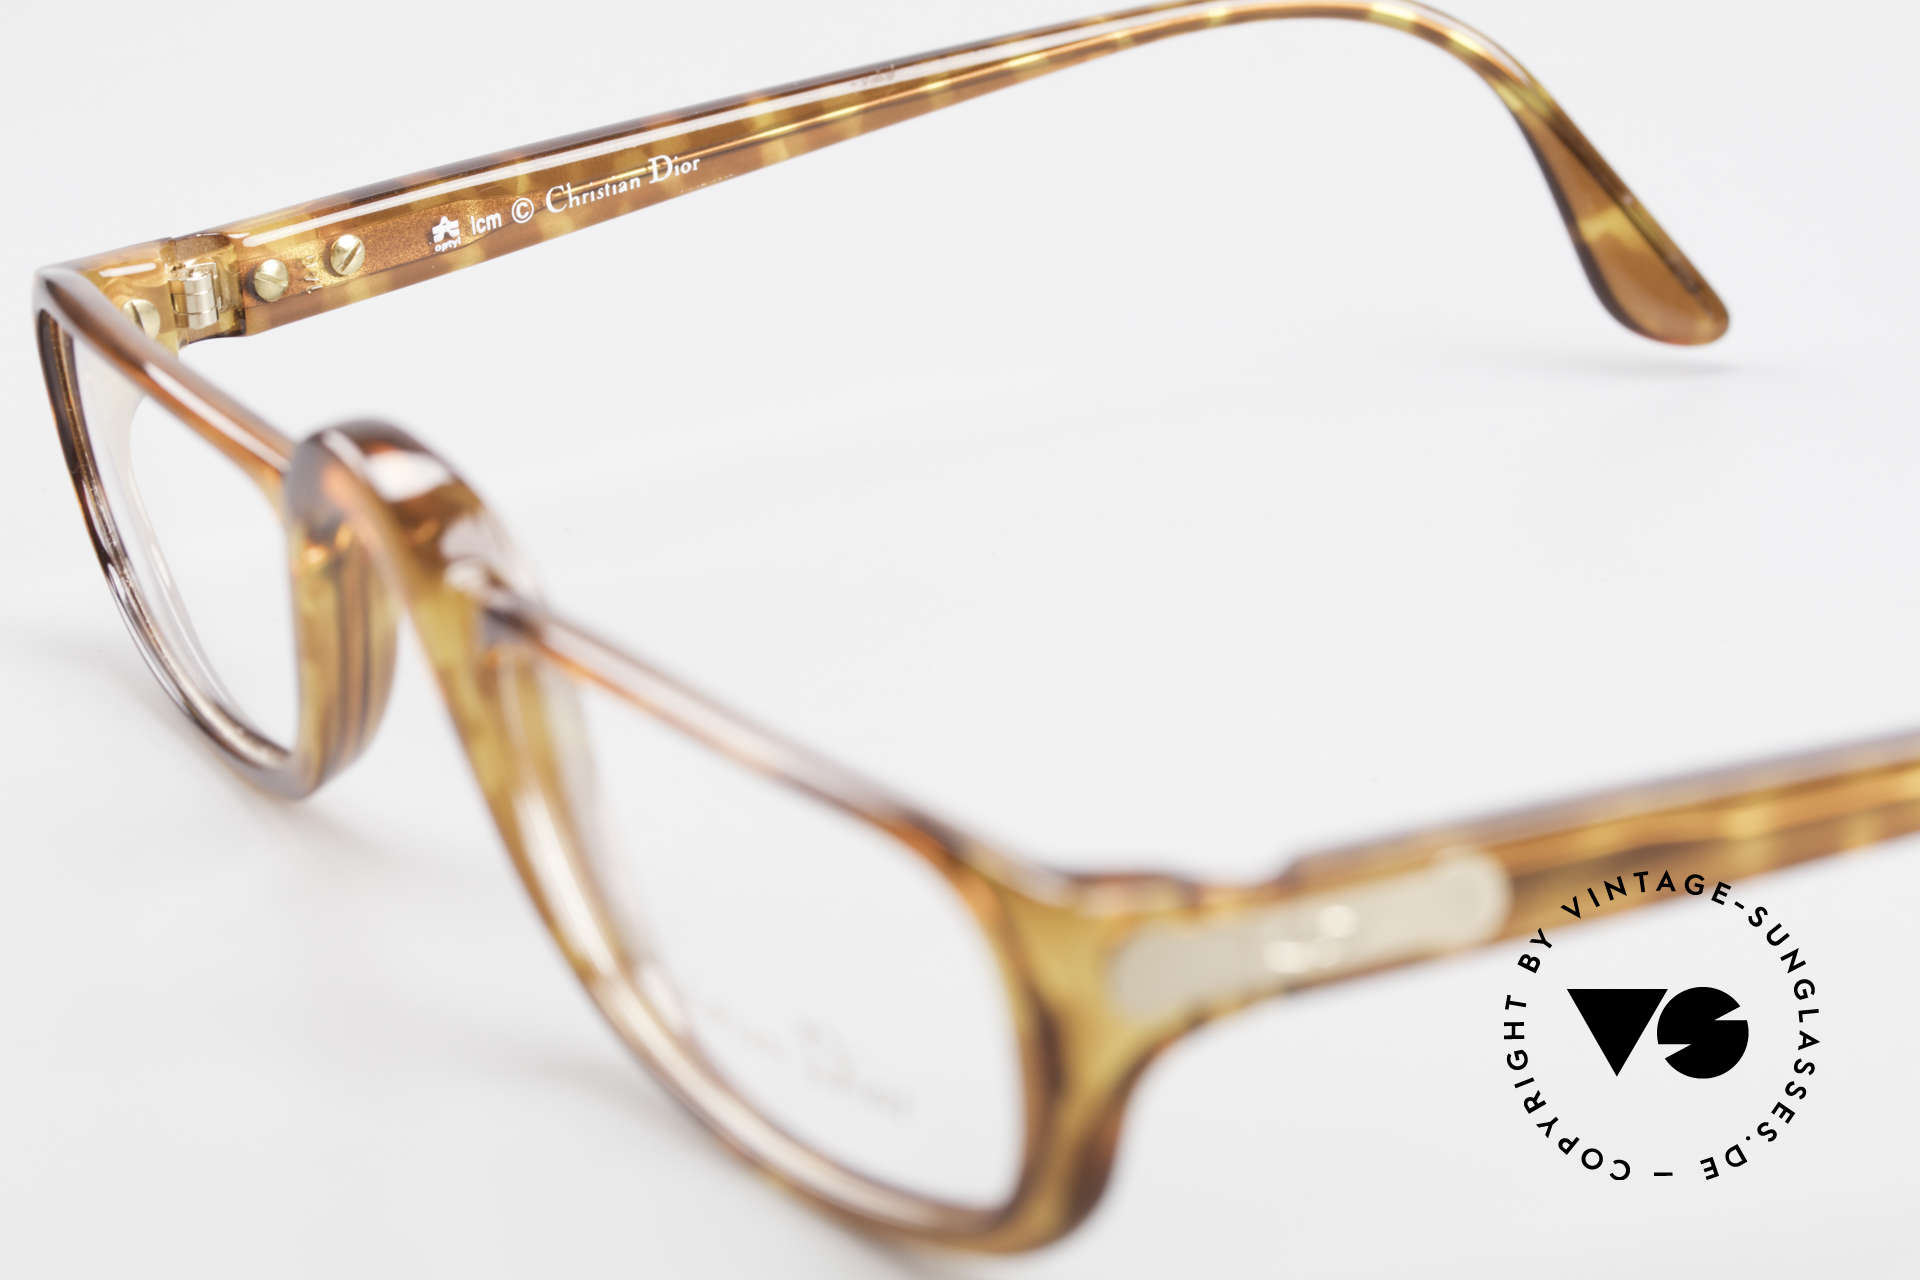 Christian Dior 2075 Reading Glasses Optyl Large, unworn, NOS (like all our vintage reading eyeglasses), Made for Men and Women